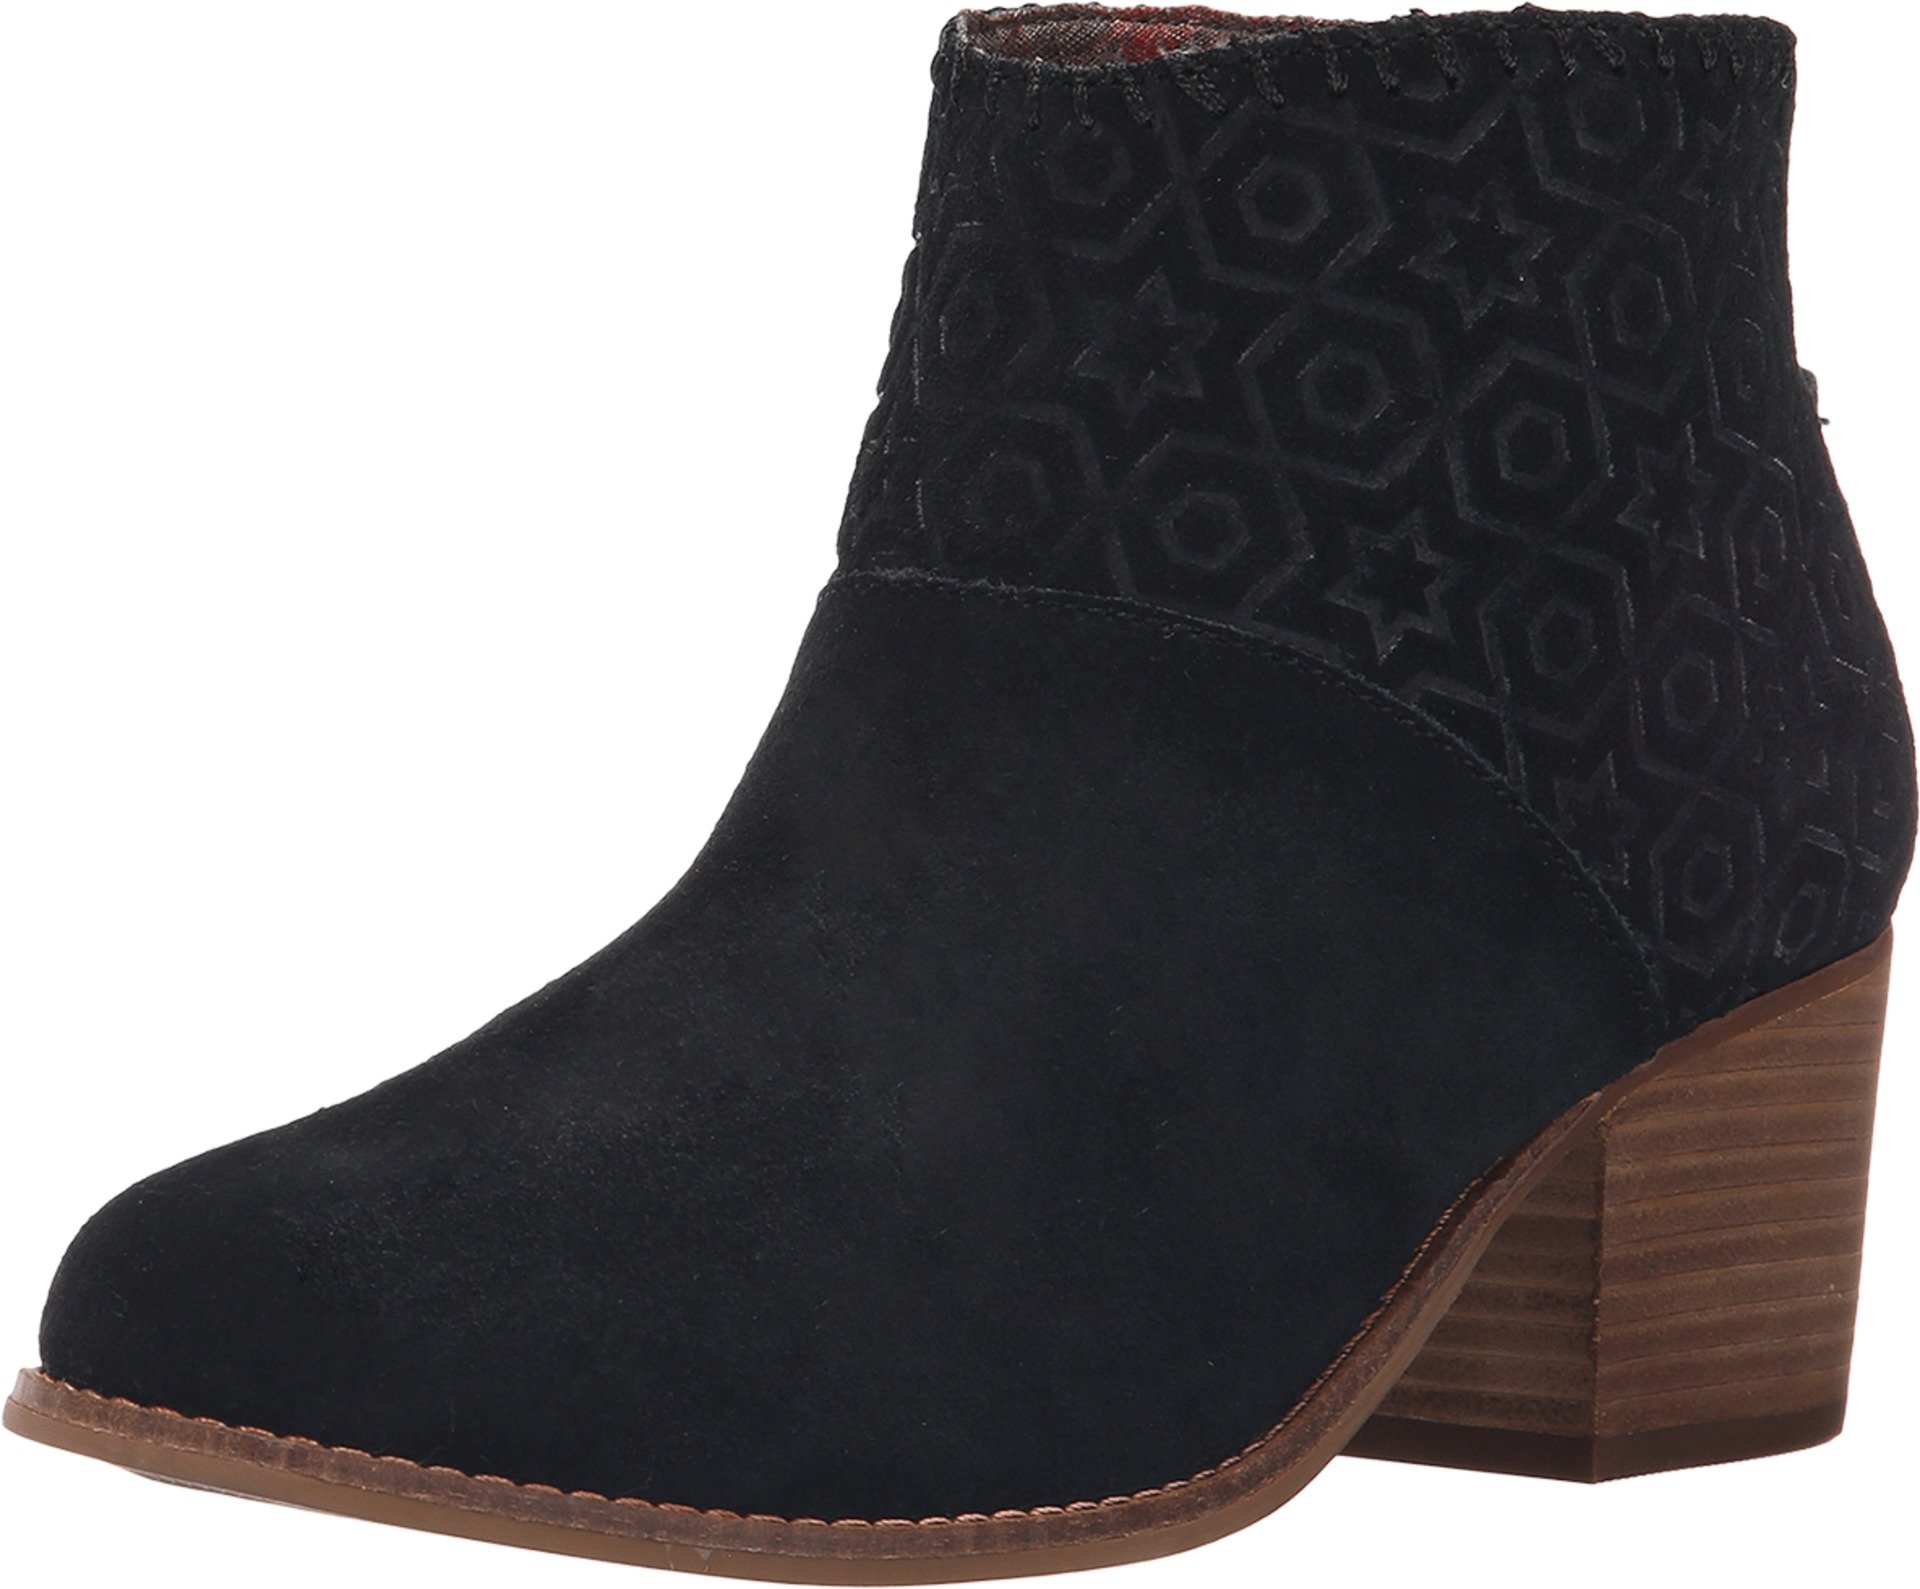 Toms Leila Bootie Black Suede Embossed 10007574 Womens 9.5 by TOMS